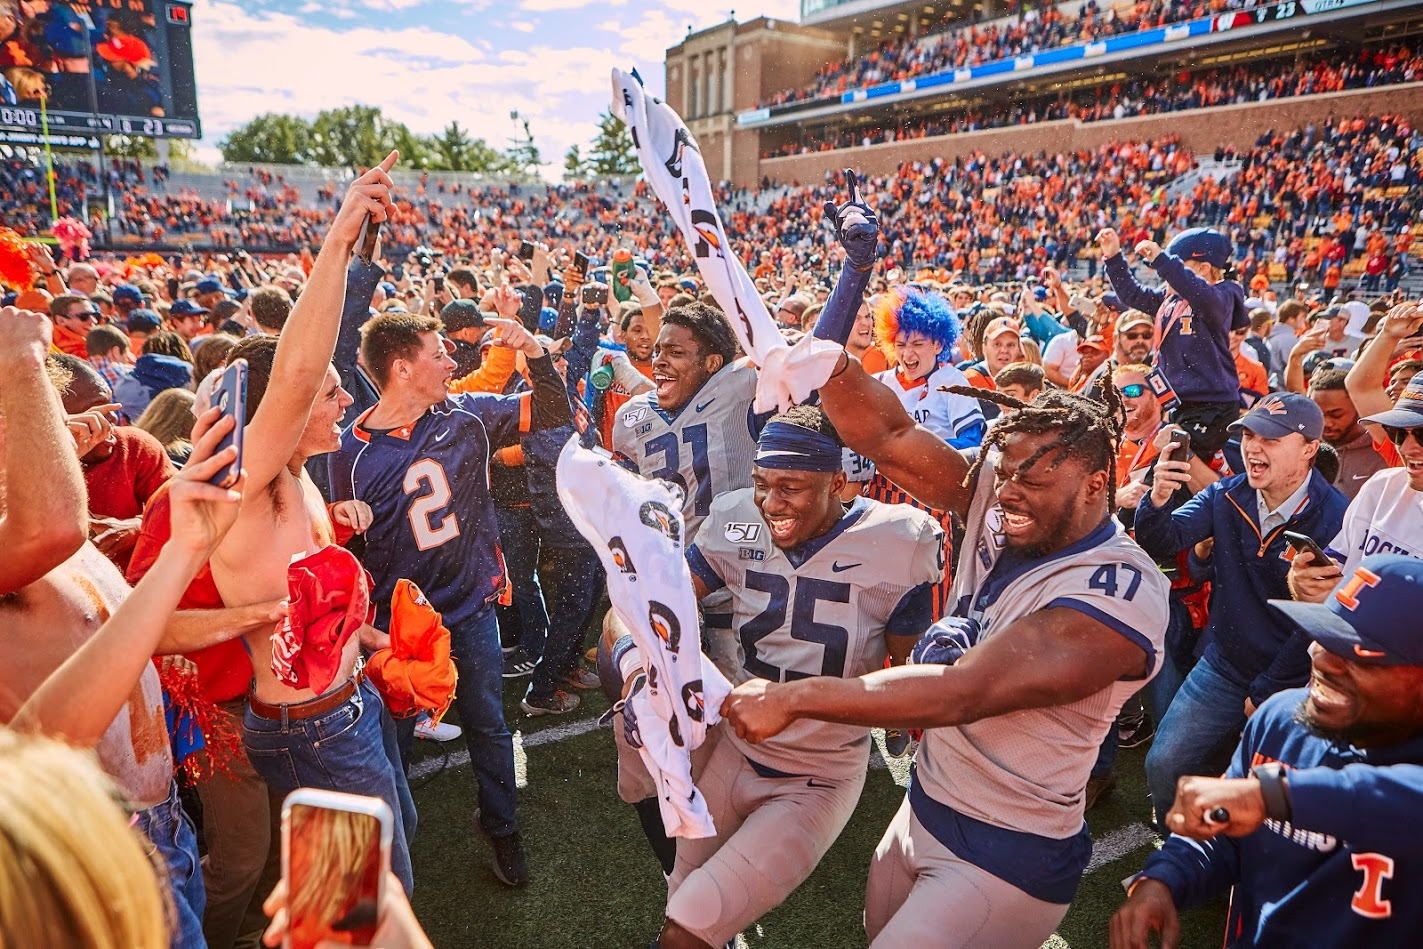 The+Illini+Football+team+celebrates+their+win+against+Wisconsin+on+Saturday.+Soon+after+their+victory%2C+spectators+of+the+game+rushed+the+field.%0A